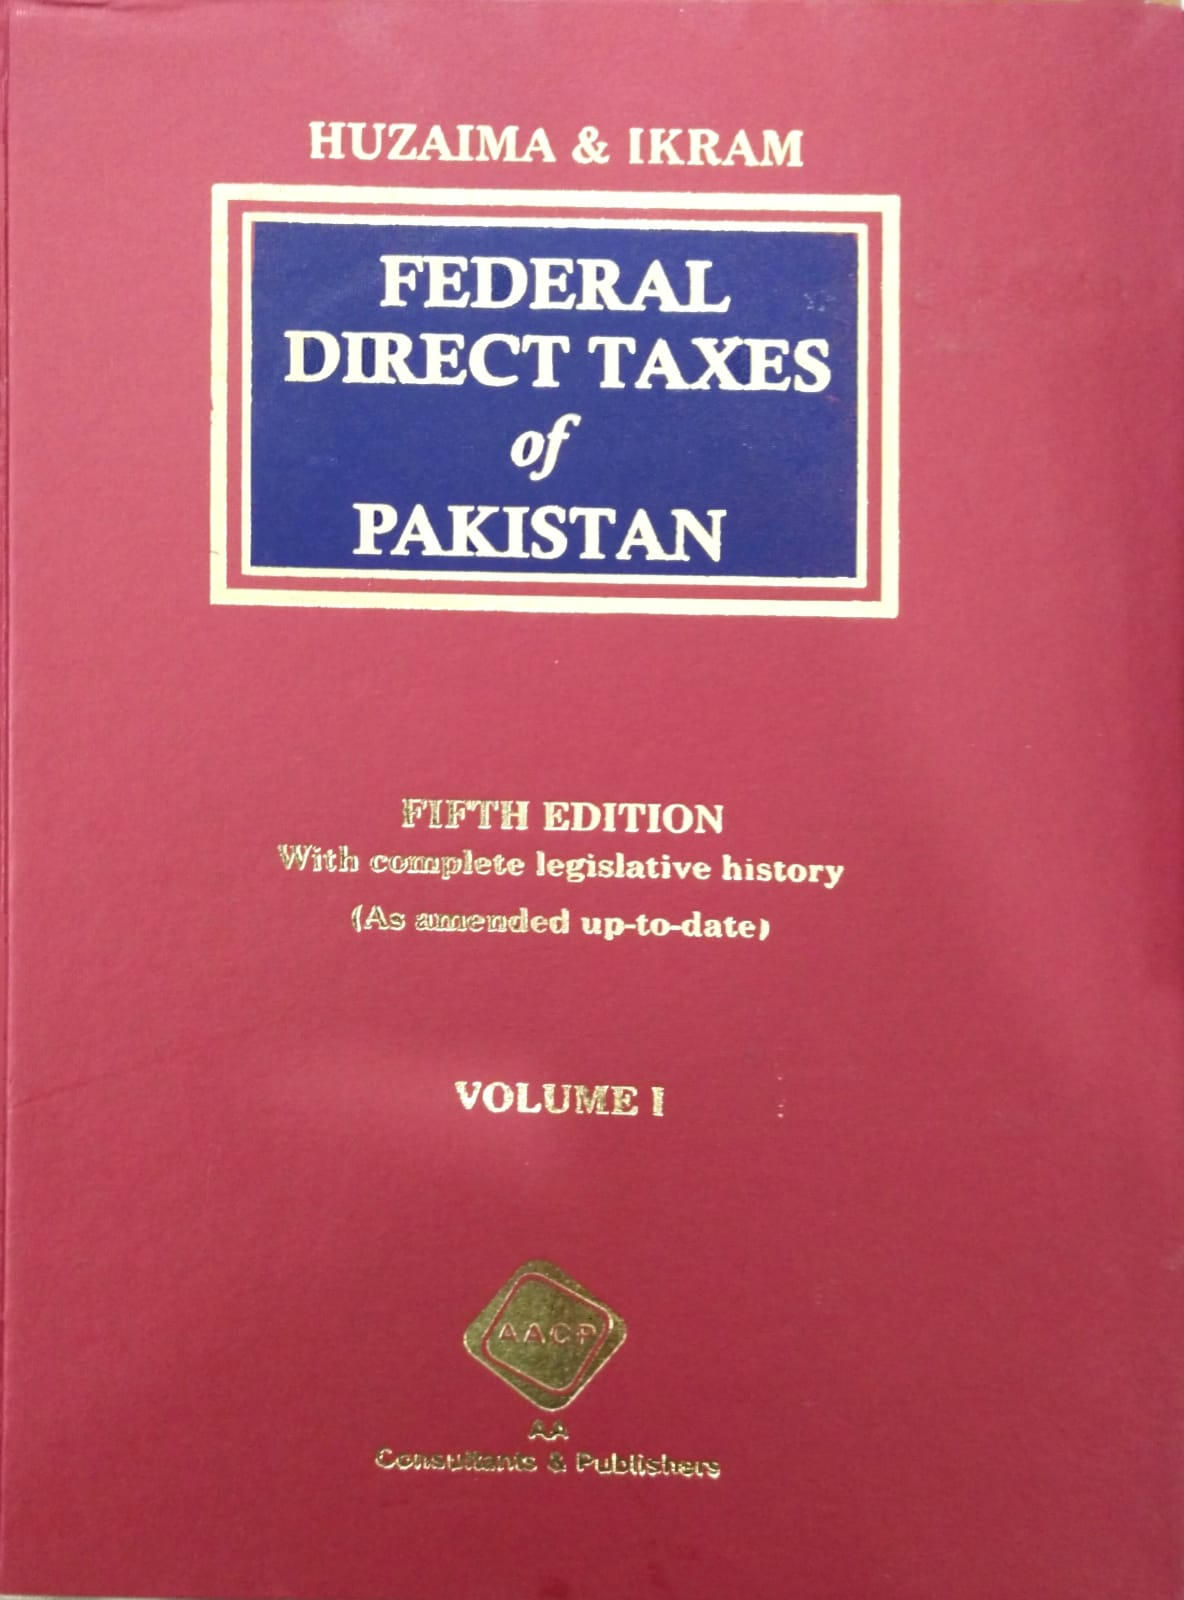 Federal Direct & Indirect Taxes of Pakistan Fifth Edition (as amended up to 5th July 2021) in 02 Vols